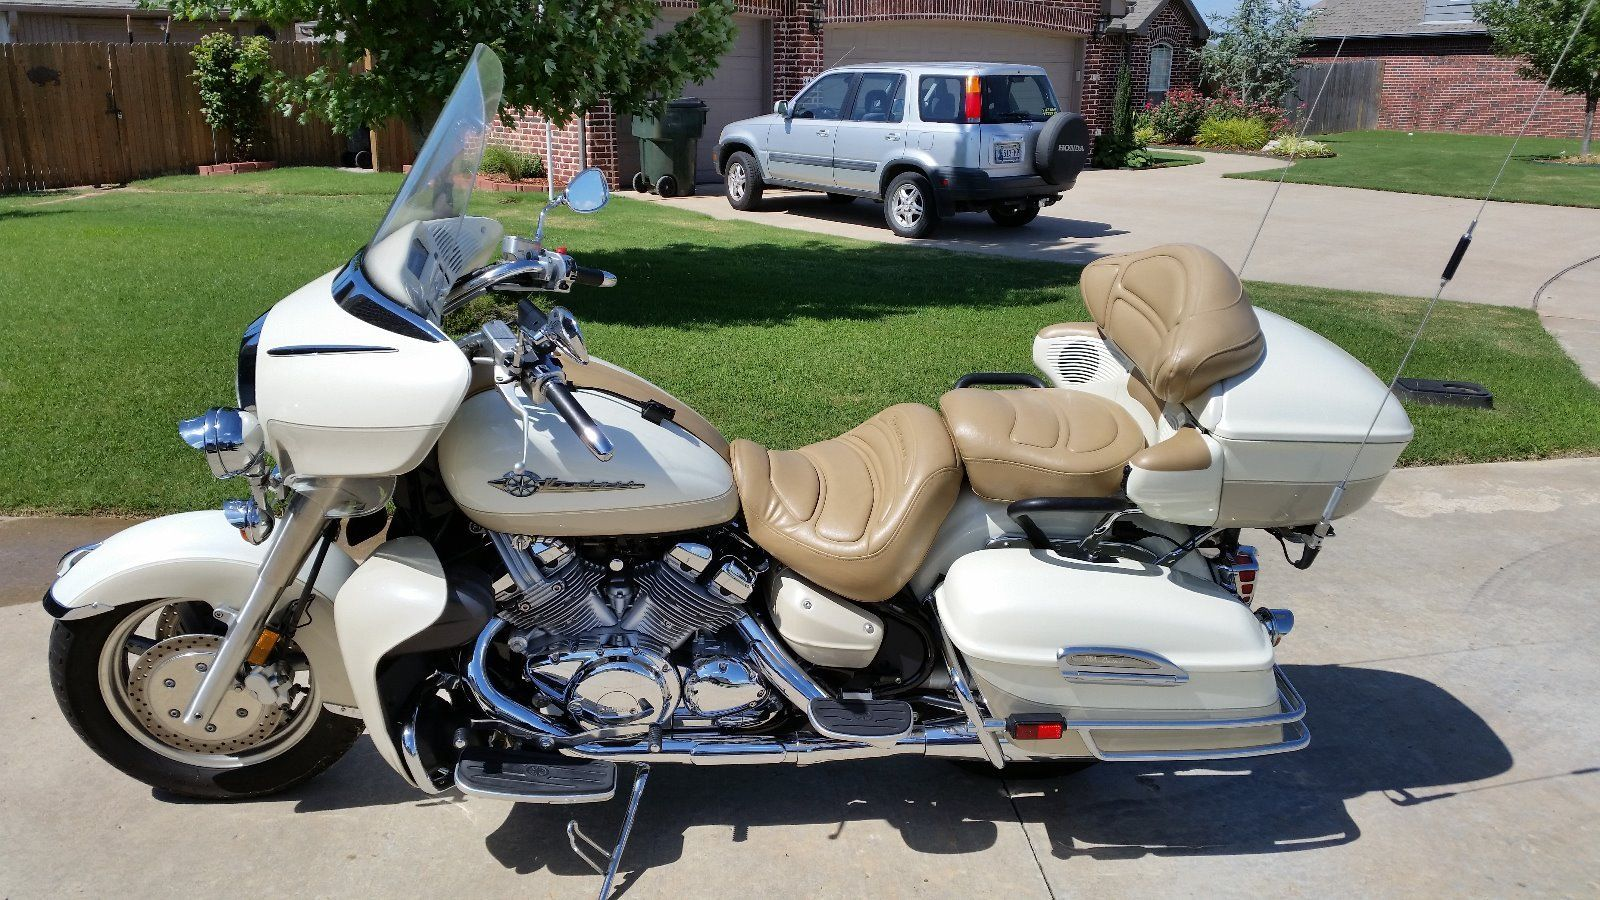 2012 v star 1300 with 2000 Yamaha Royalstar Venture Mm Limited Edition on File Actros V8 Star Edition further 2016 Yamaha Yz450f 60th Anniversary Mx 4 Stroke Dirt Bike additionally Contact besides 6771659391 also Millennium Falcon High The School C us Looks Exactly Like Star Wars Spaceship.